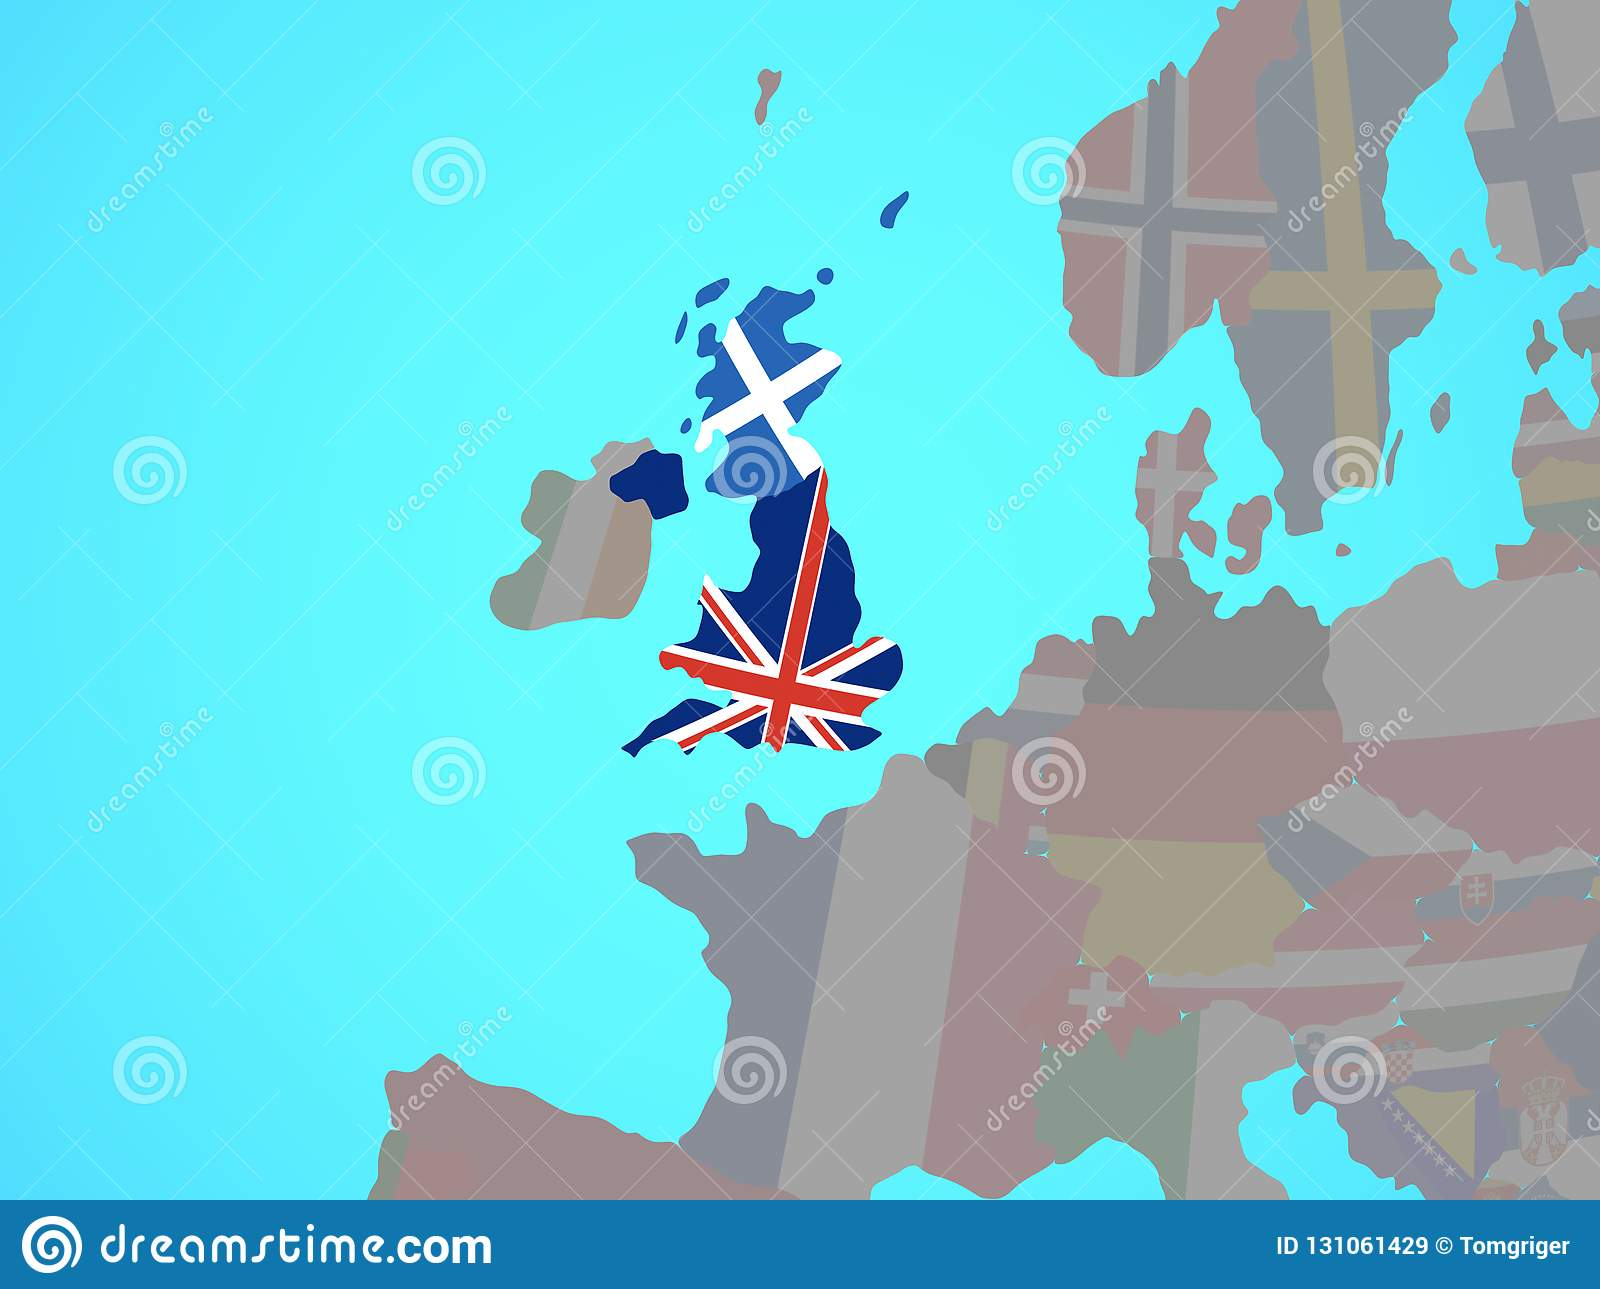 Scotland with flag on map stock illustration. Illustration ... on sudan on map, belfast on map, sicily on map, rhine river on map, flanders on map, england on map, wales on map, europe on map, netherlands on map, isle of man on map, glasgow on map, balkans on map, switzerland on map, denmark on map, sardinia on map, edinburgh on map, scandinavia on map, slovenia on map, brussels on map, tibet on map,